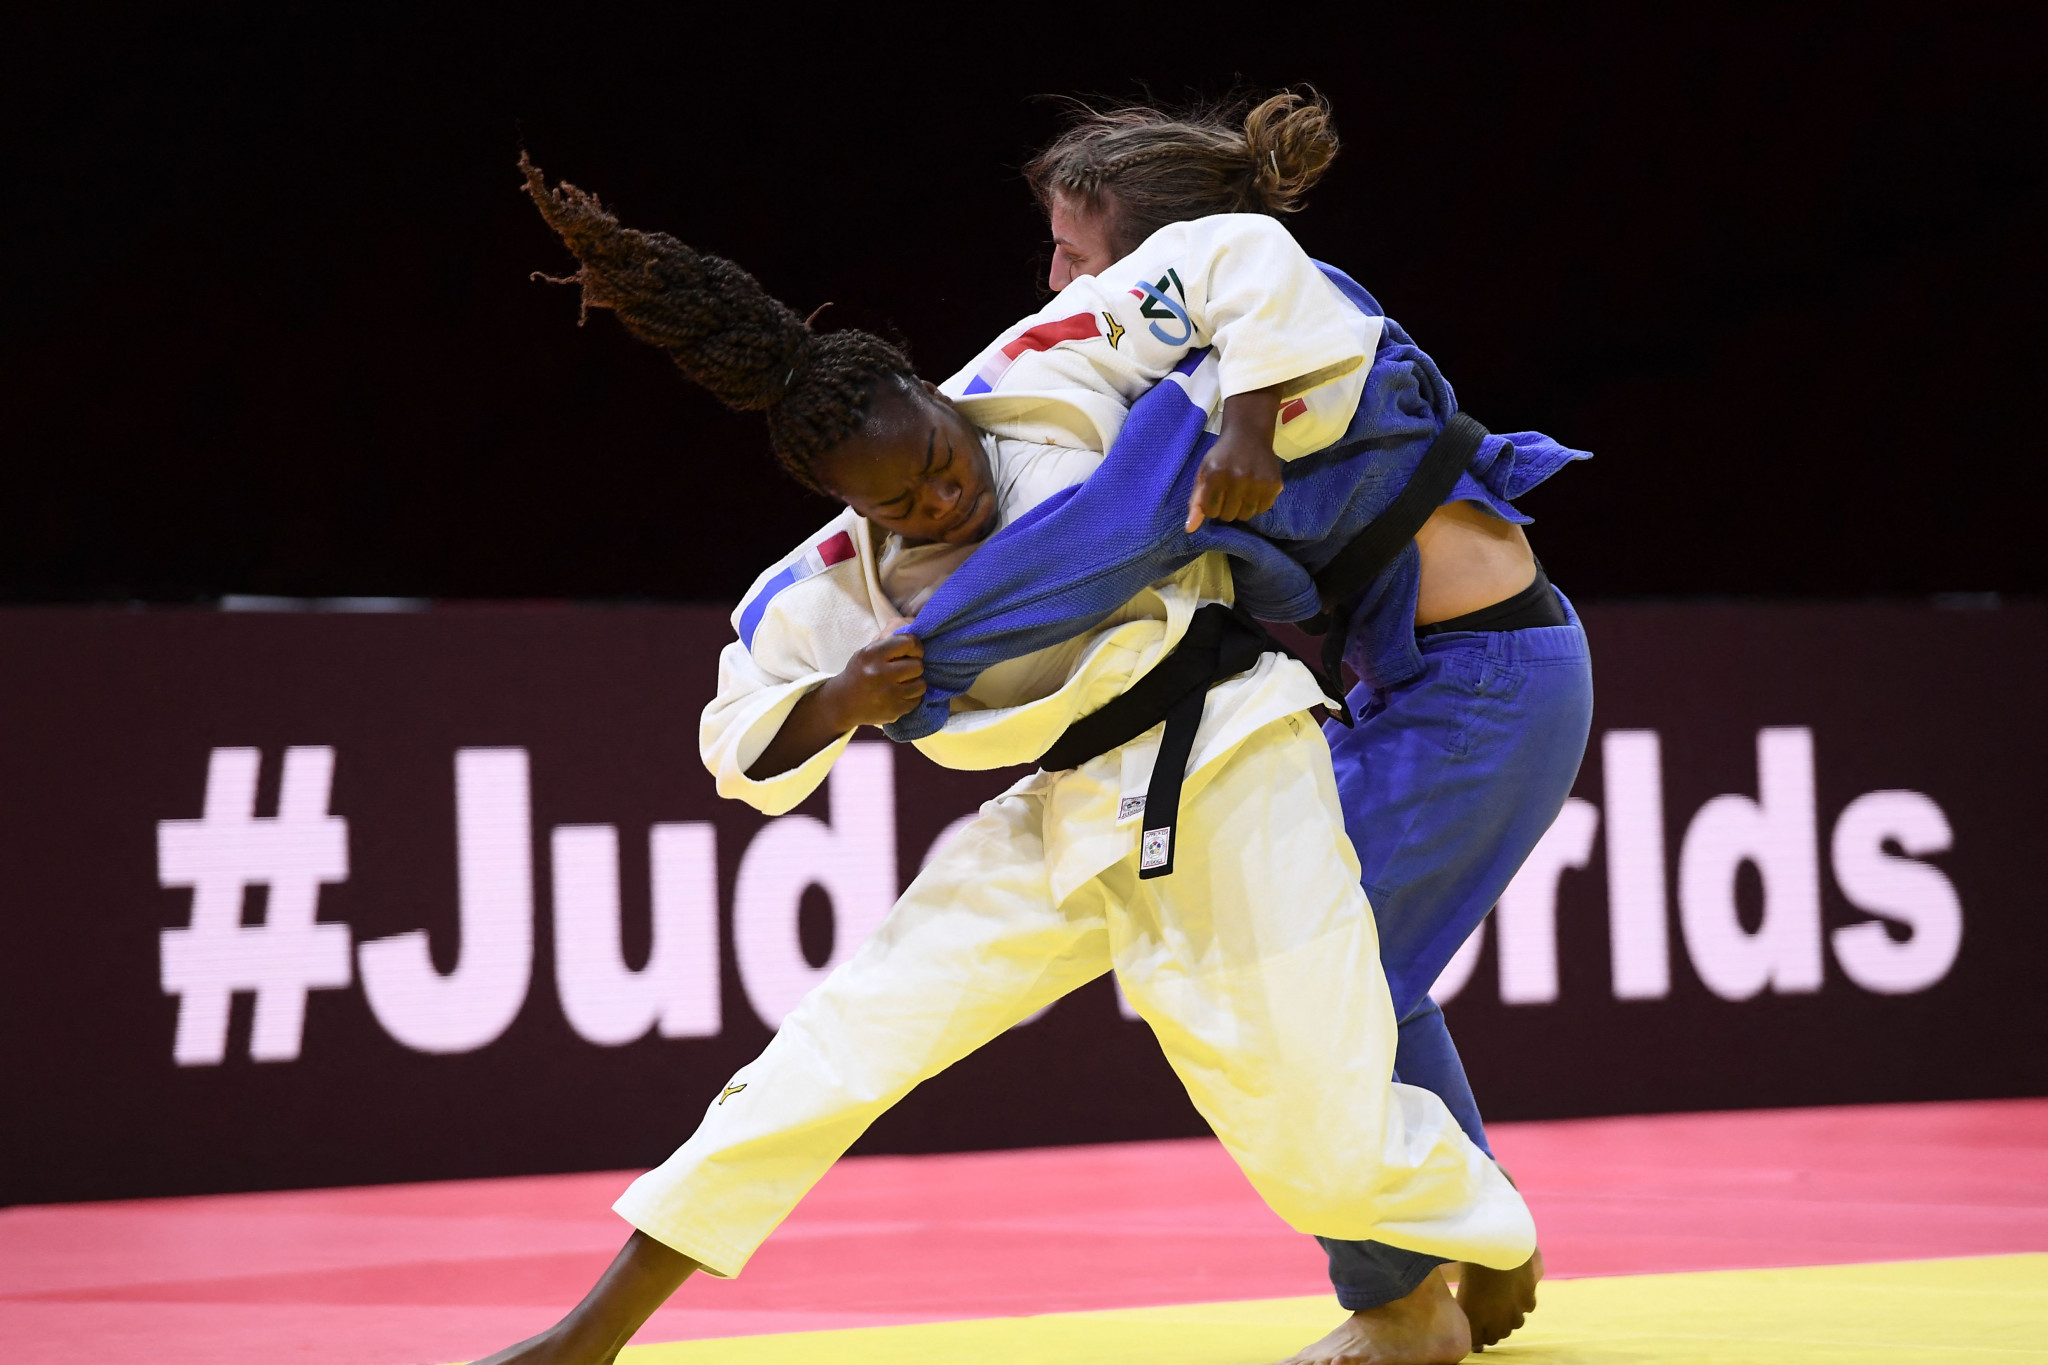 Clarisse Agbegnenou proved too strong for the Slovenian Andreja Leški in the women's under-63kg final ©Getty Images